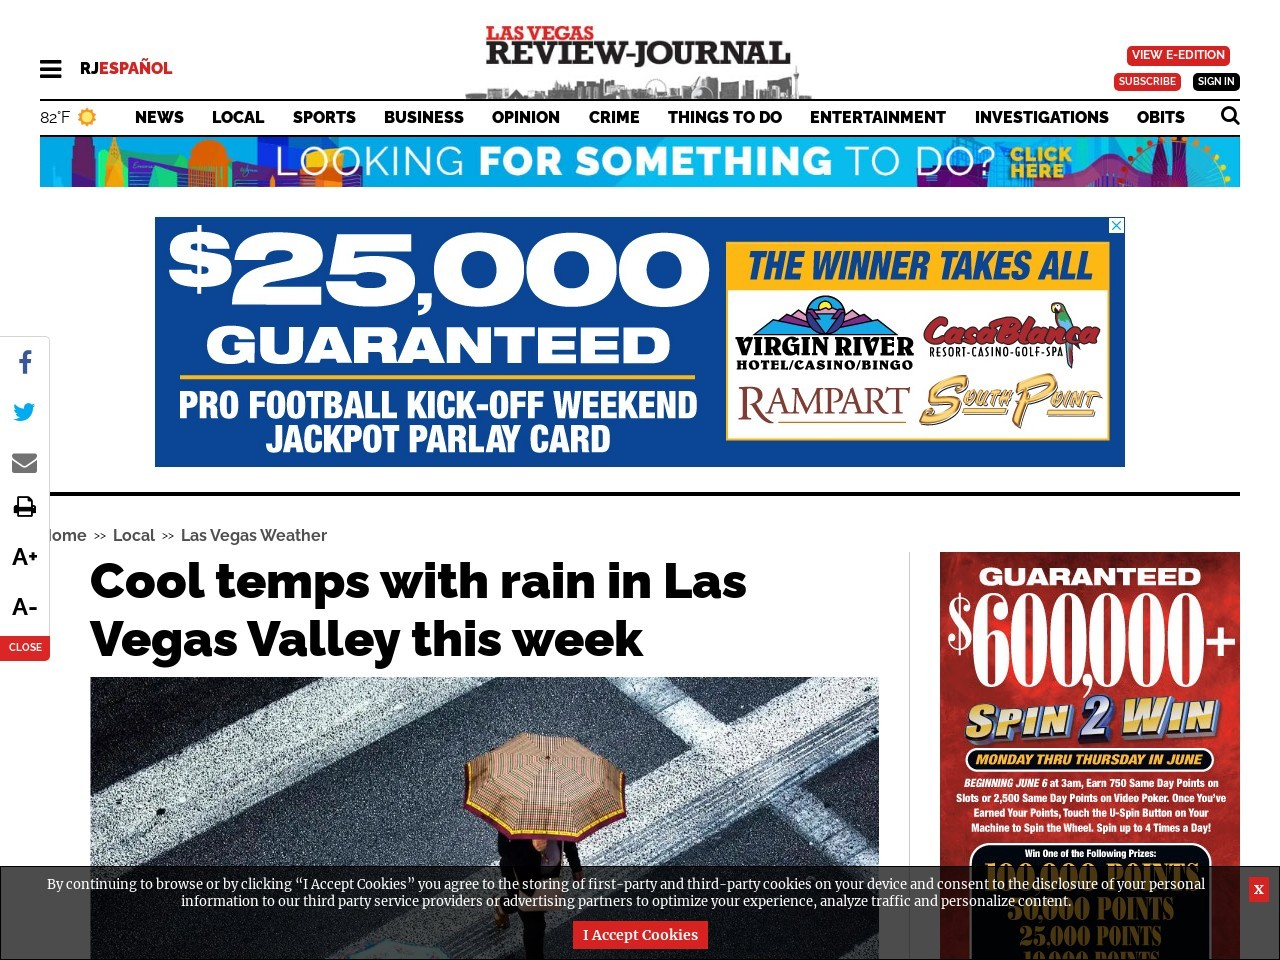 Cool temps with rain in Las Vegas Valley this week